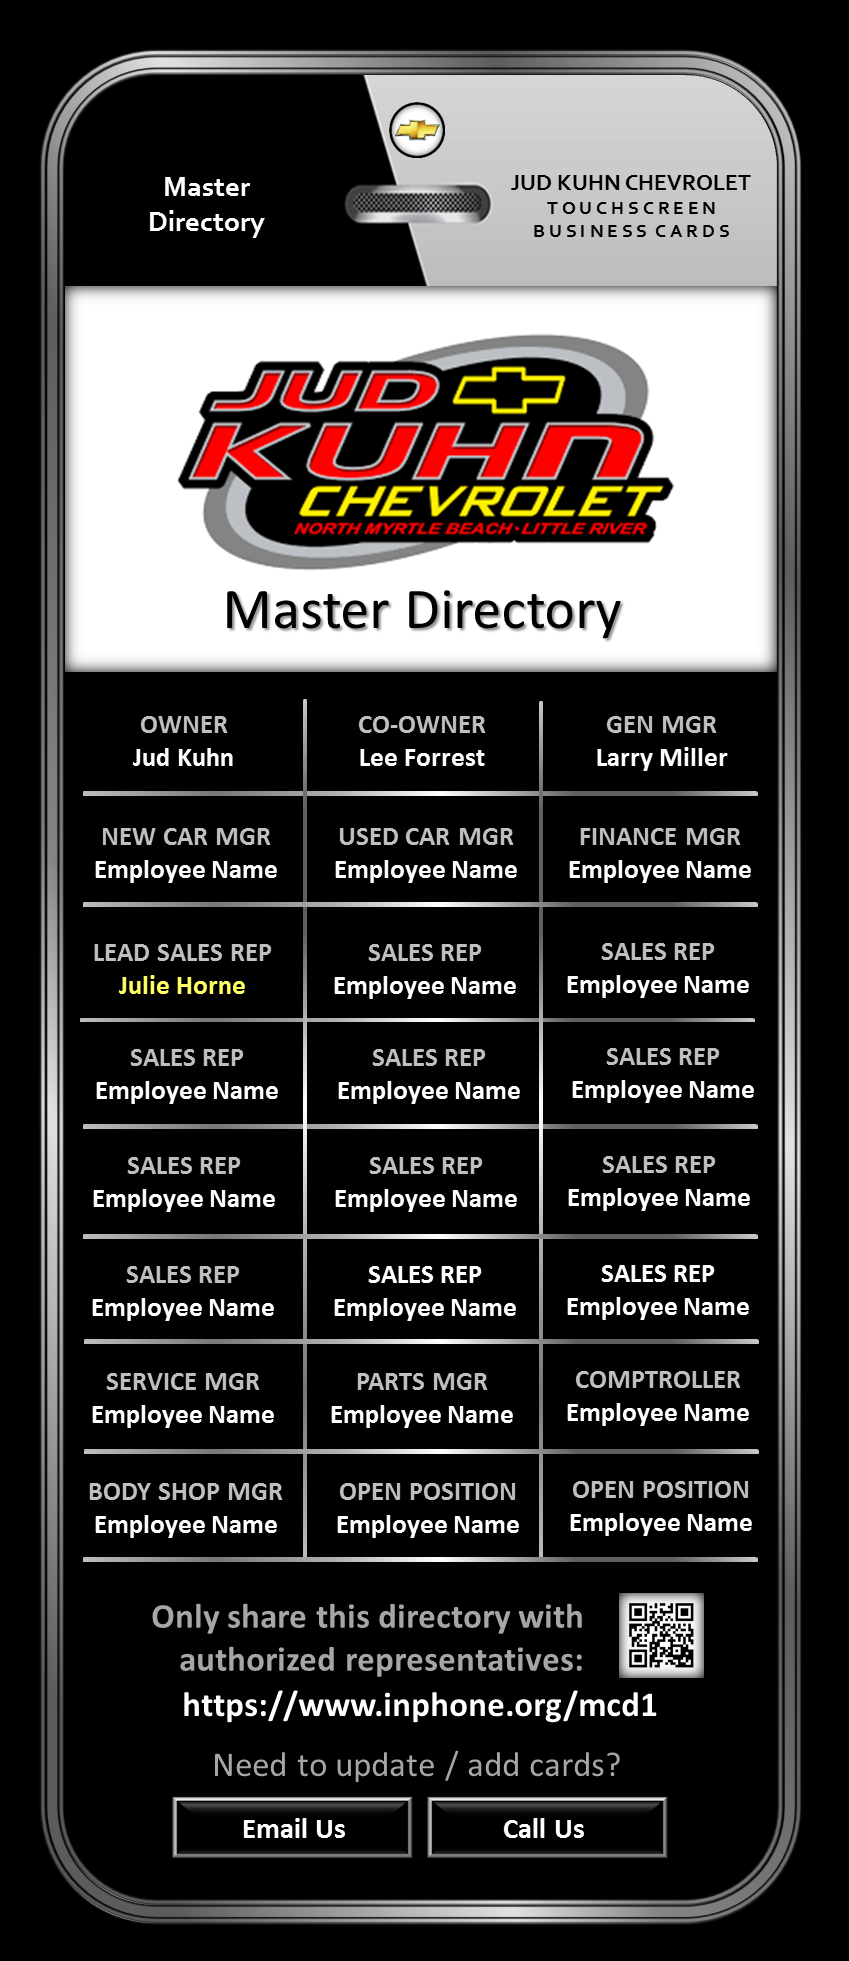 Master Directory Sample - For Presentati